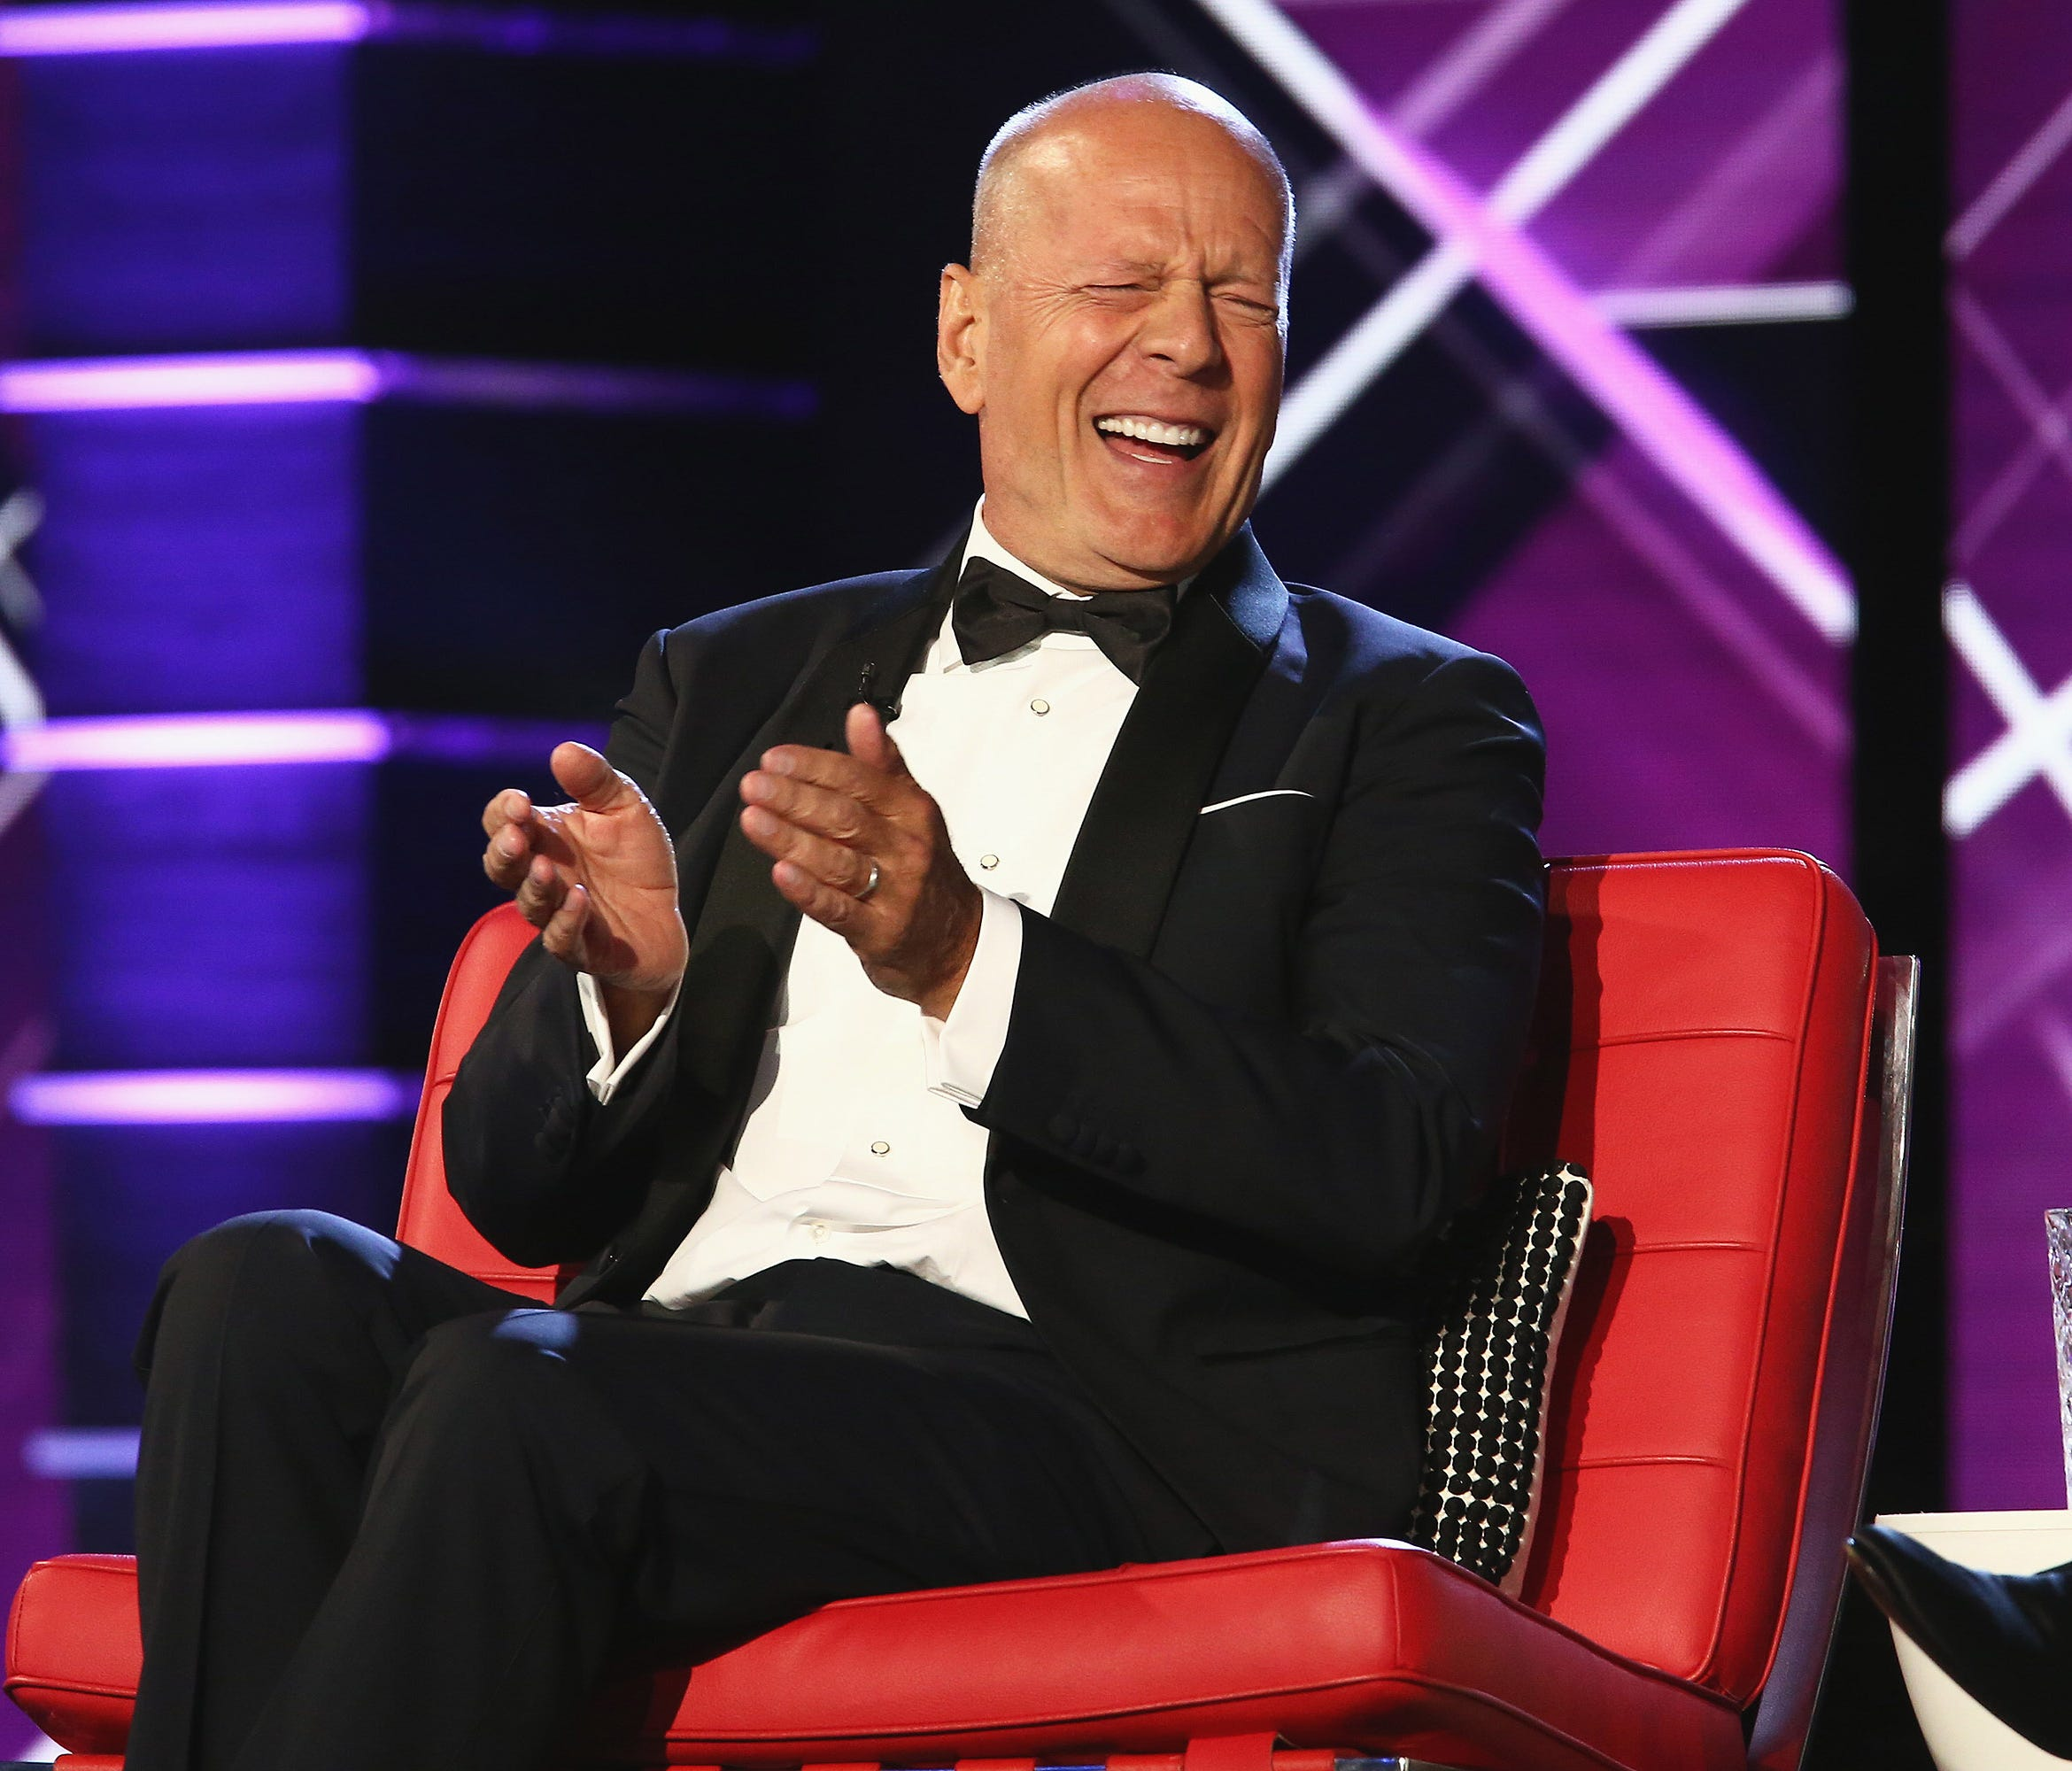 Bruce Willis laughed at himself plenty during his Comedy Central roast.